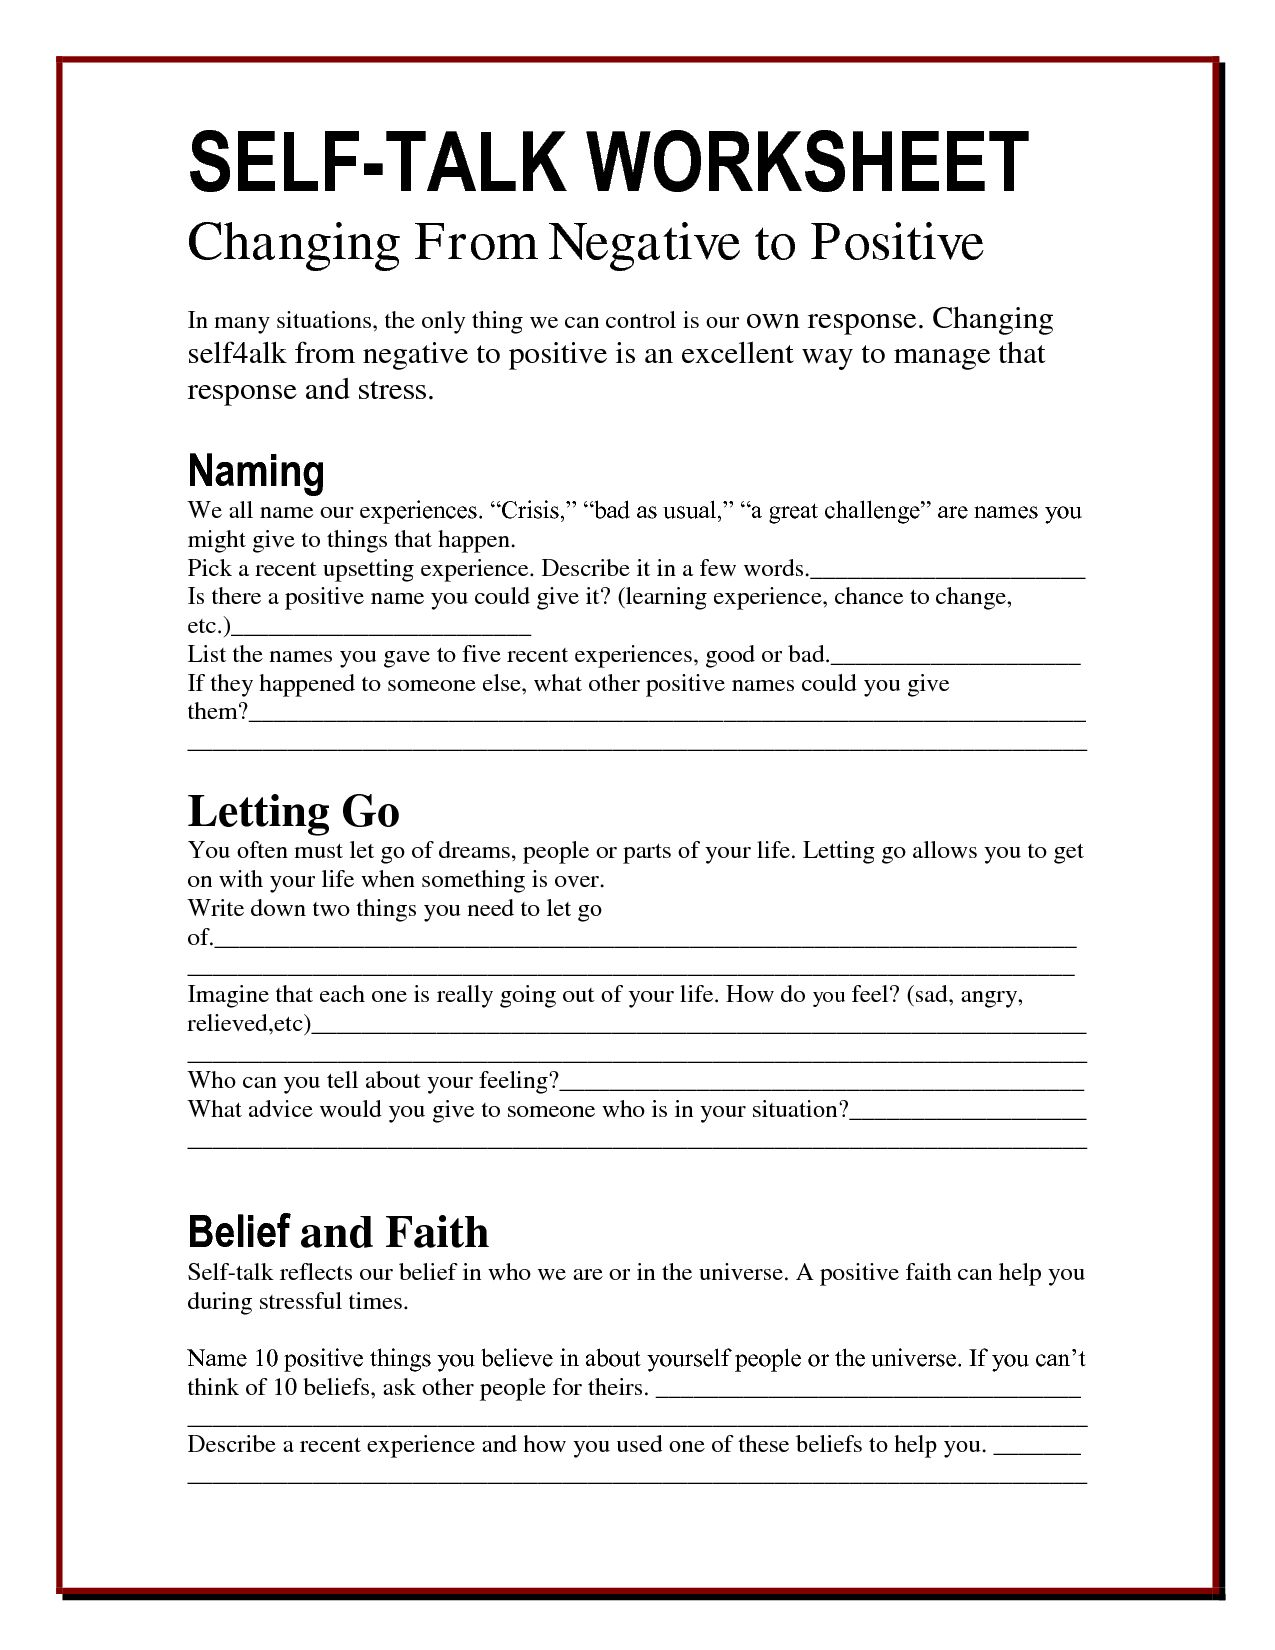 Worksheets Free Marriage Counseling Worksheets i statements preview trchild life pinterest worksheets self talk worksheet changing negative to positive behaviour